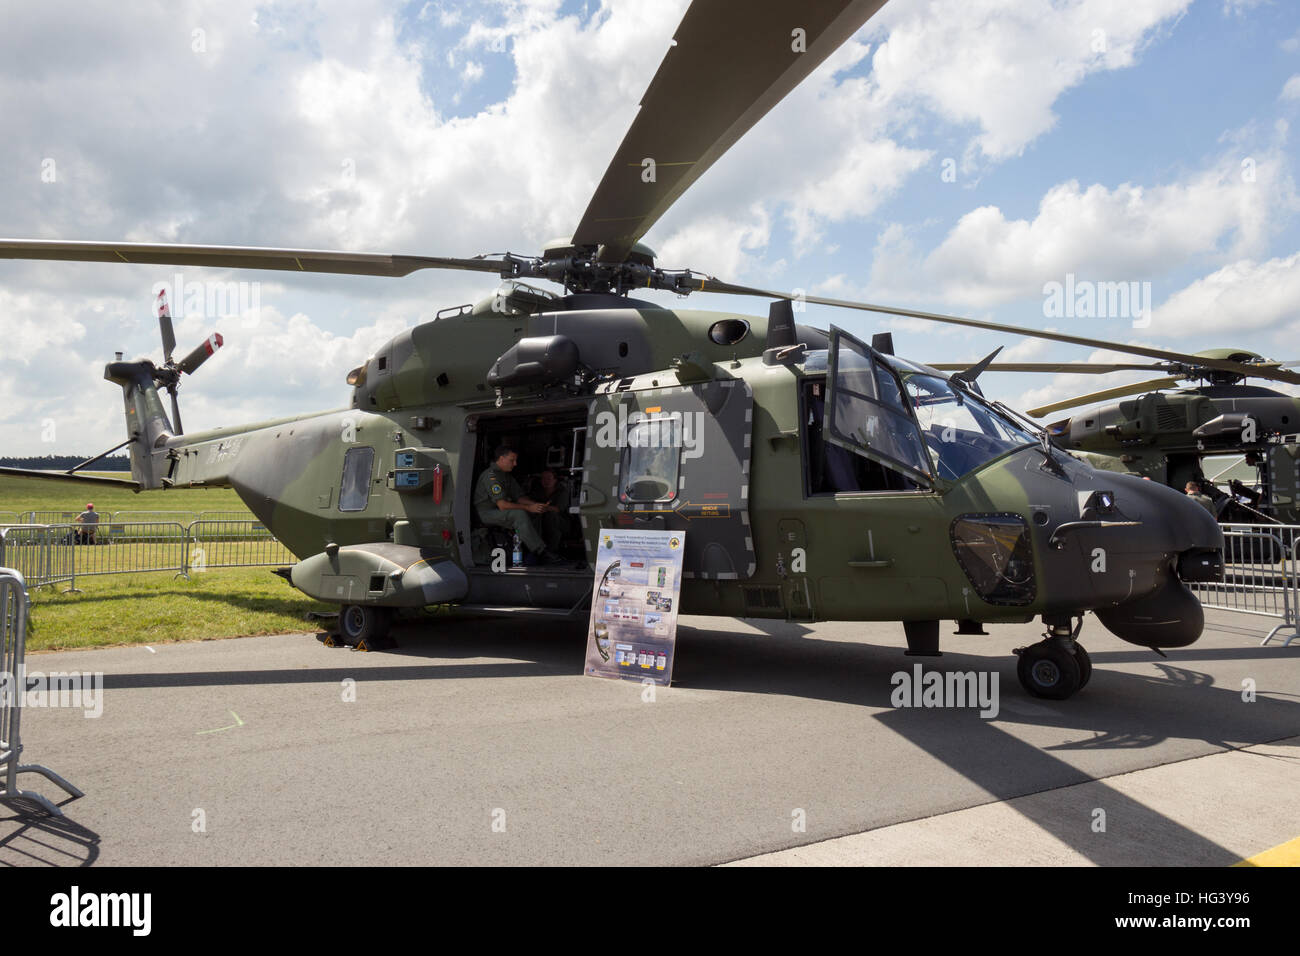 German Army NH90 helicopter - Stock Image